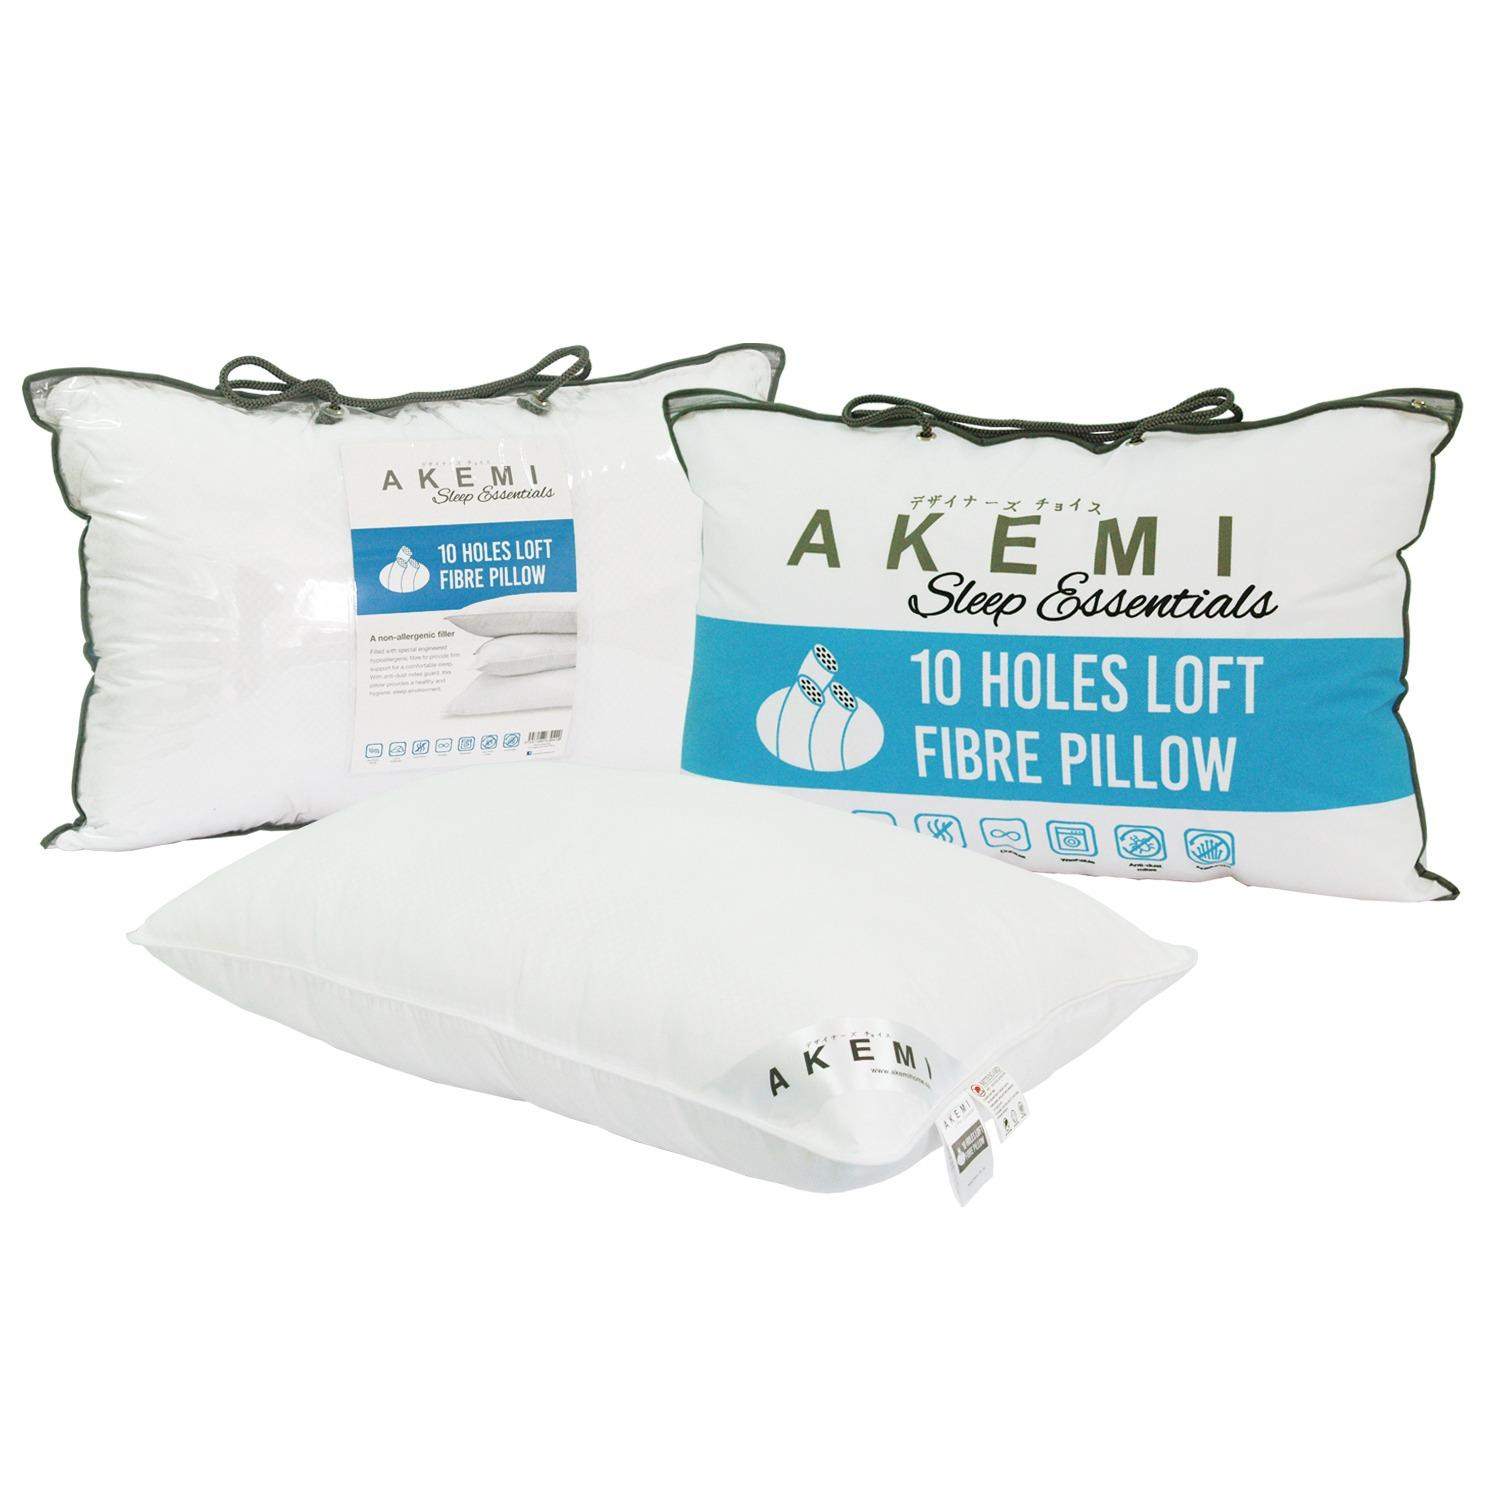 AKEMI Sleep Essentials 10 Holes Loft Fibre Pillow